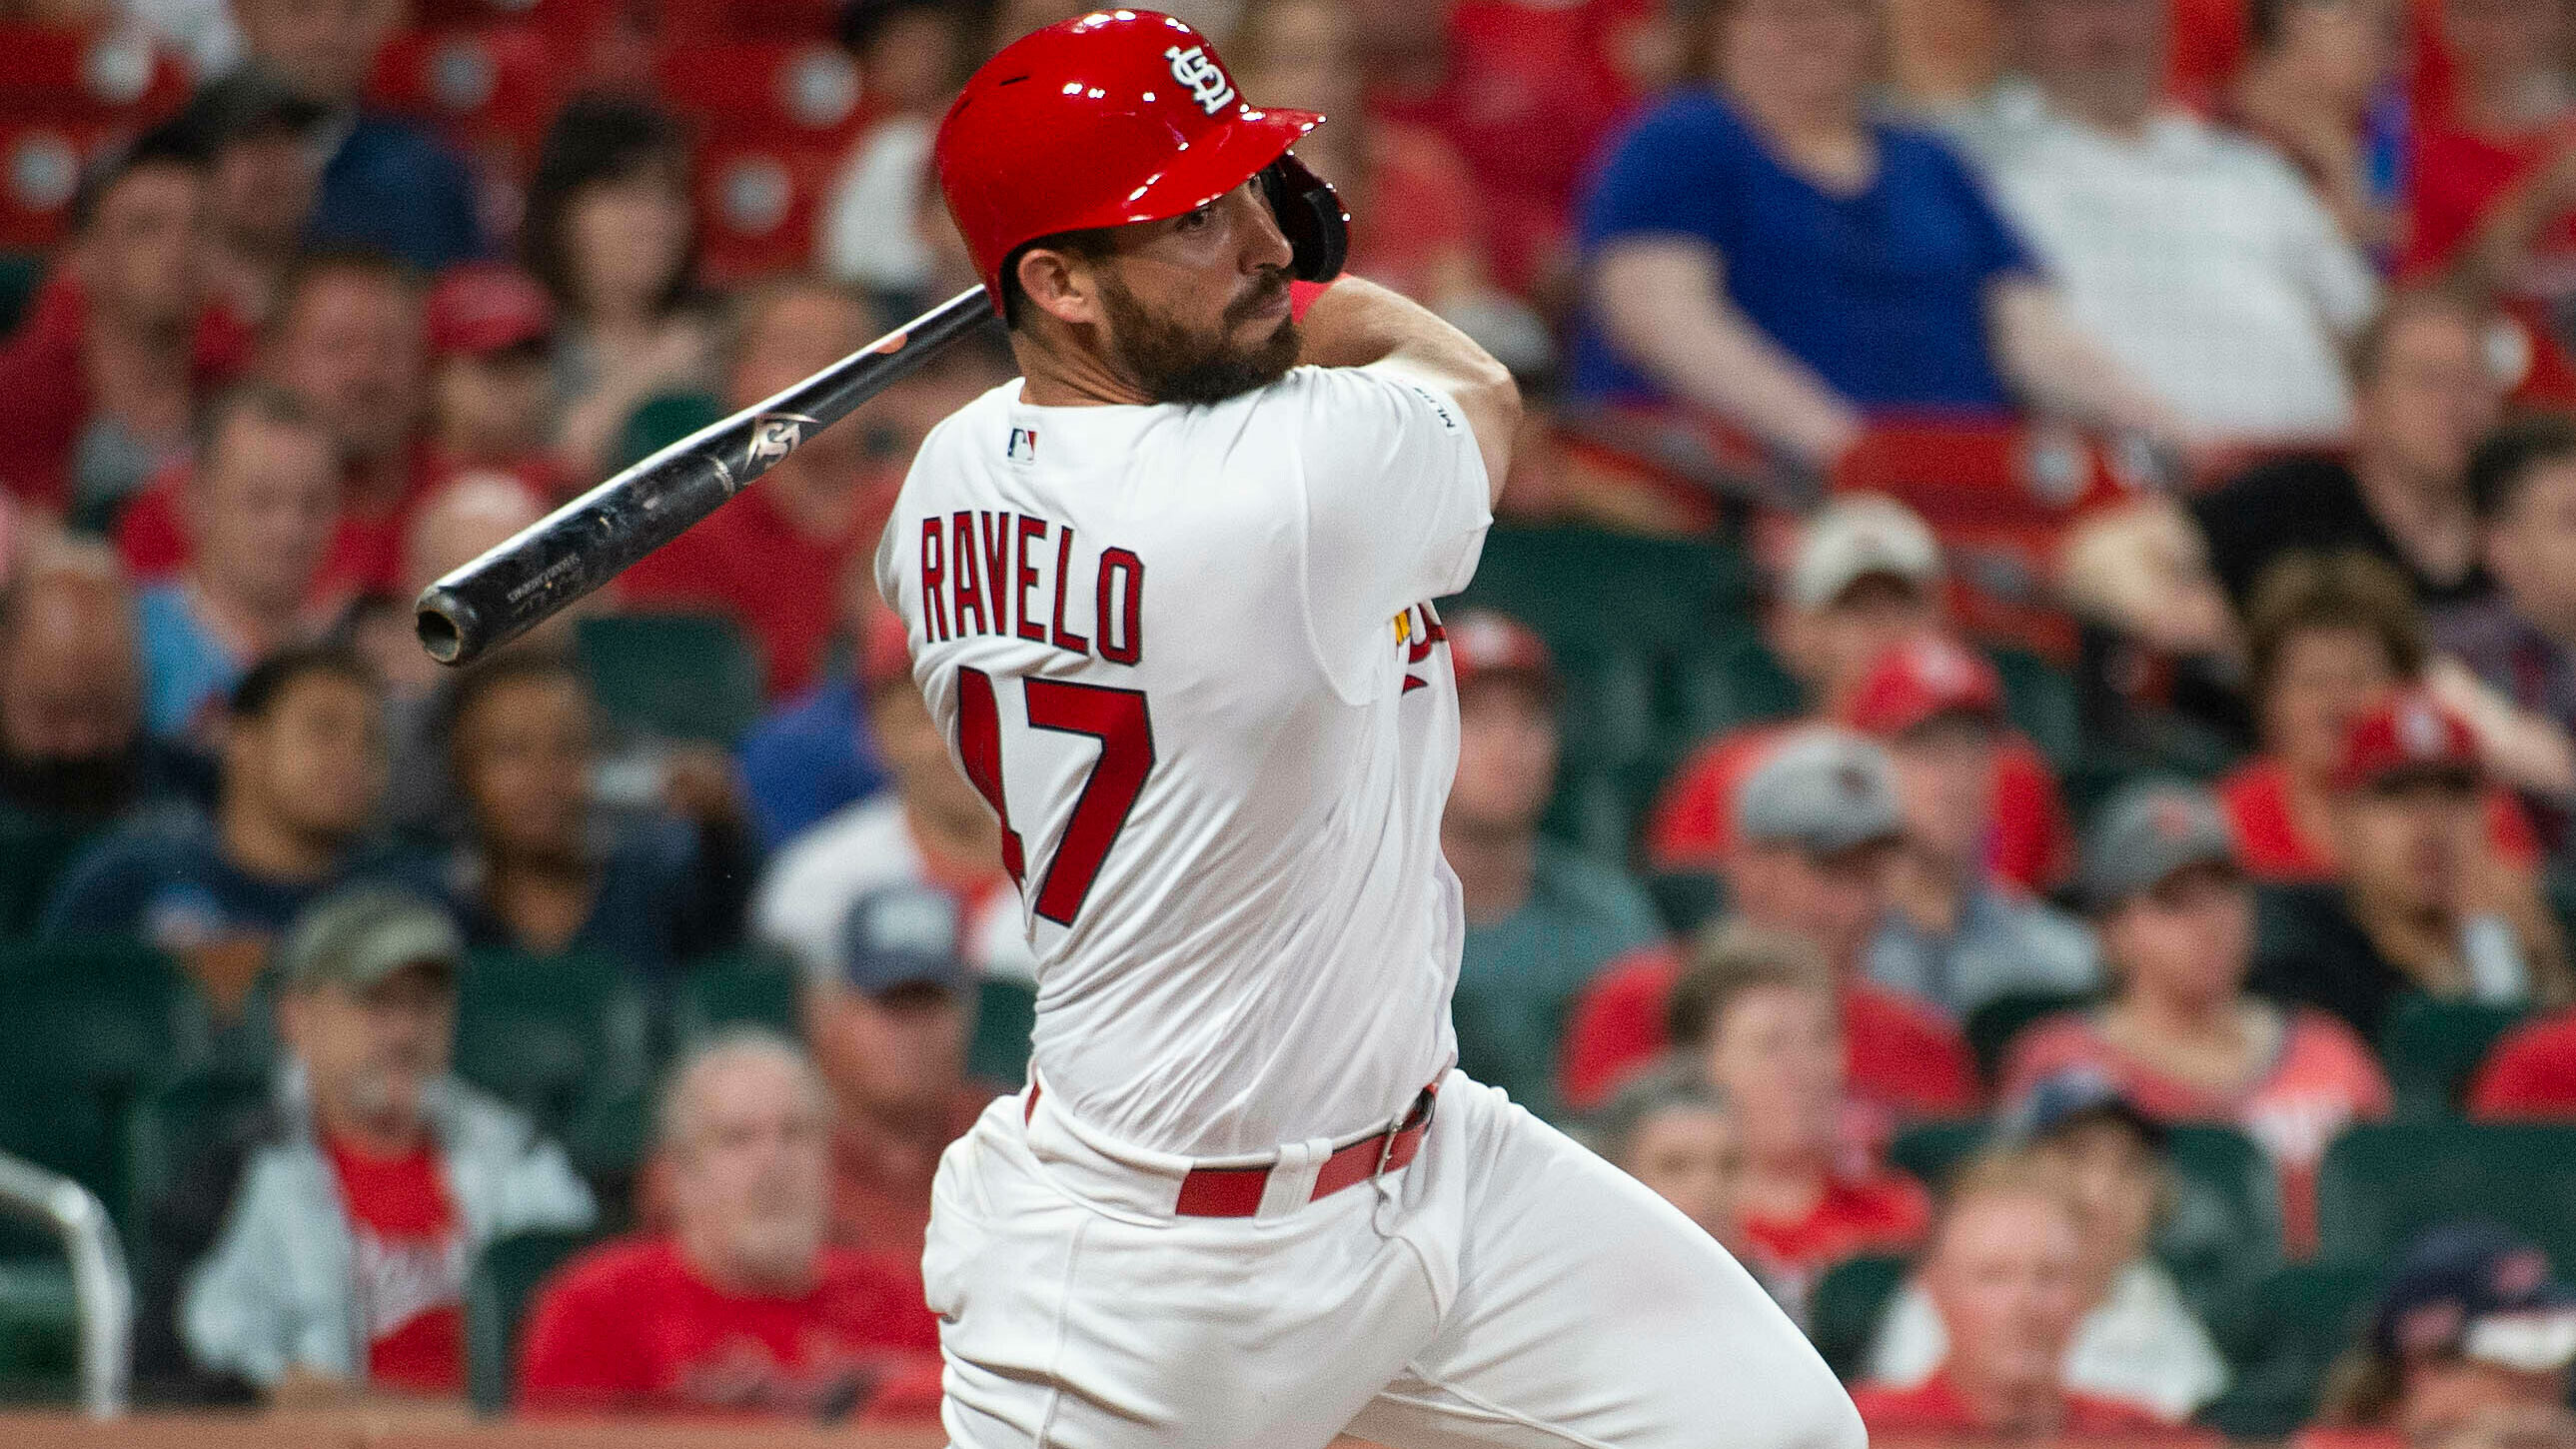 Cards call up Ravelo and Webb, send down Helsley and Leone